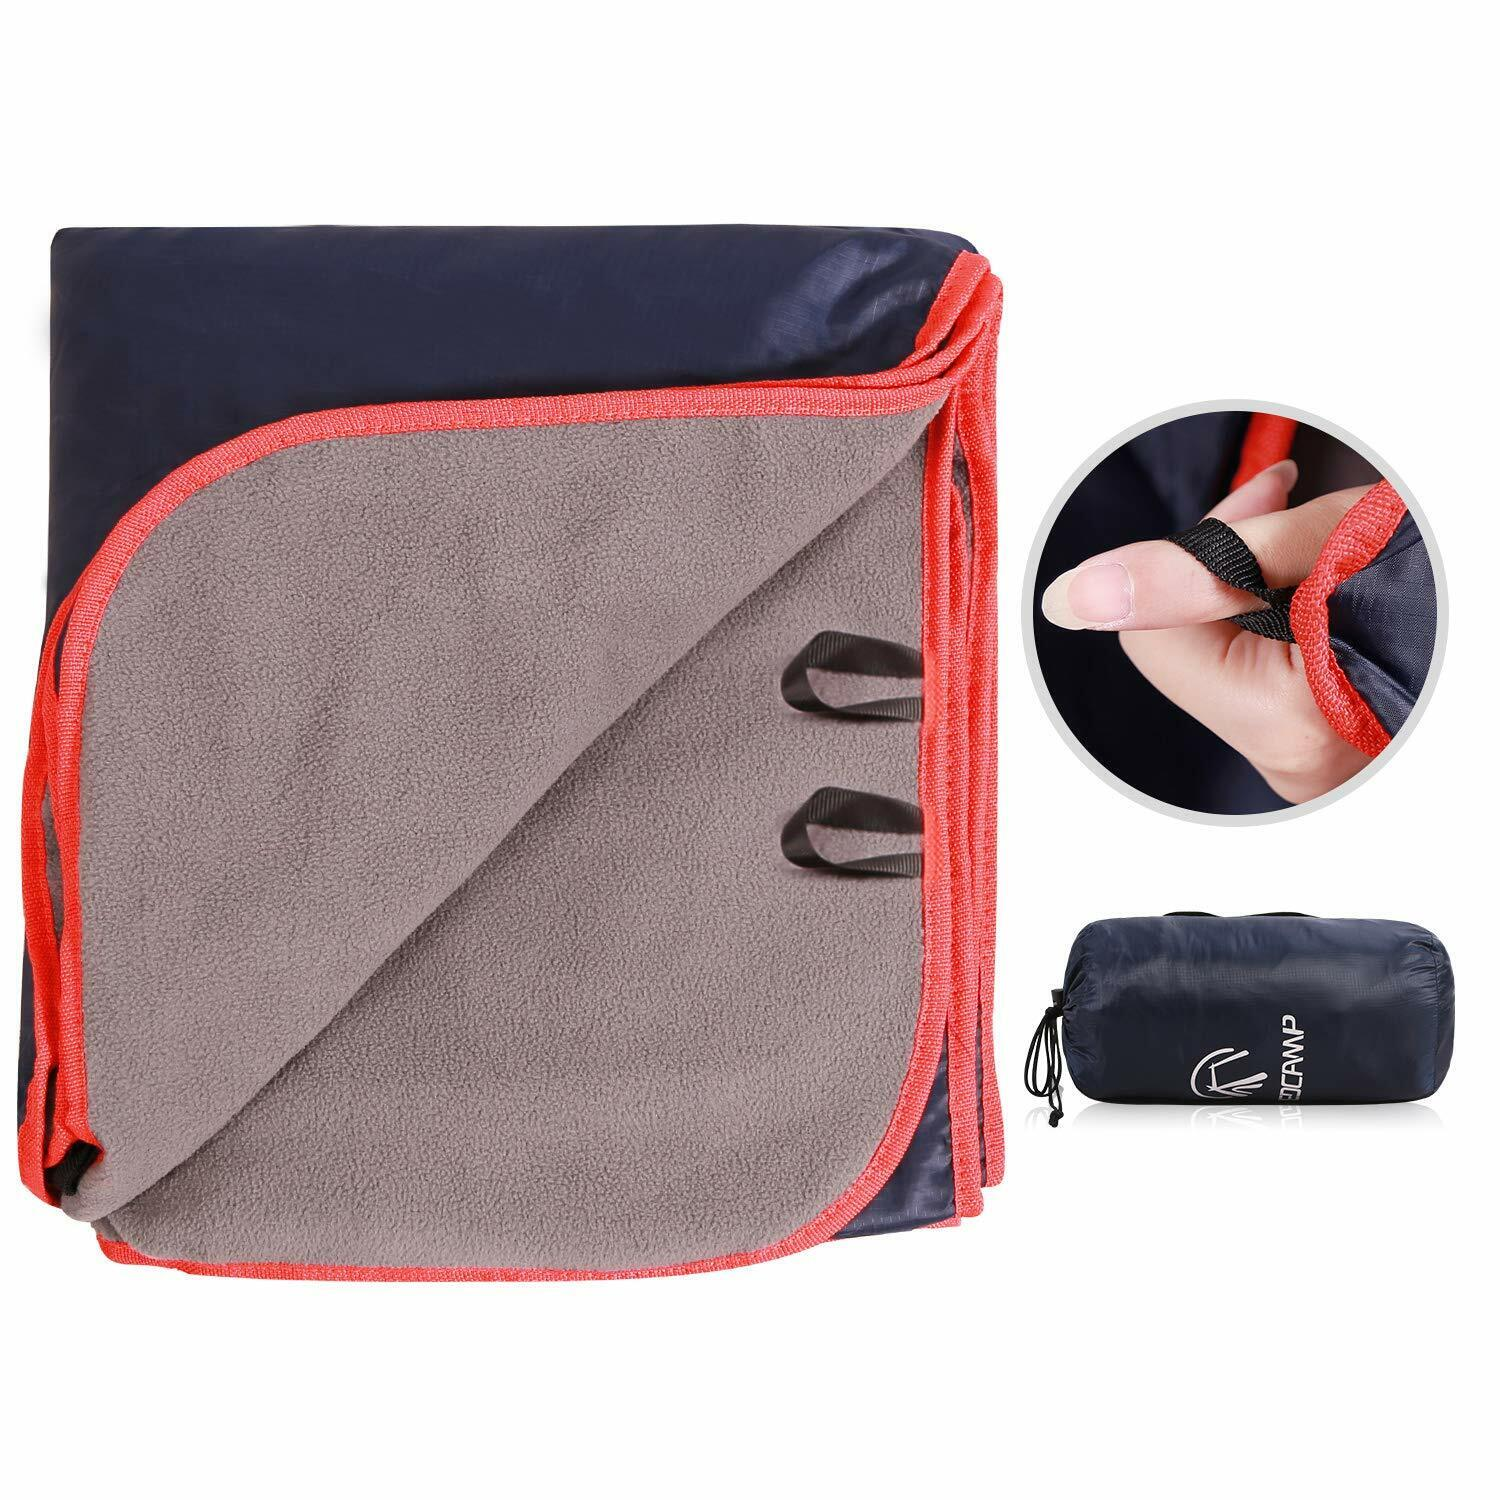 REDCAMP Outdoor Stadium Camping Blanket with Waterproof Back